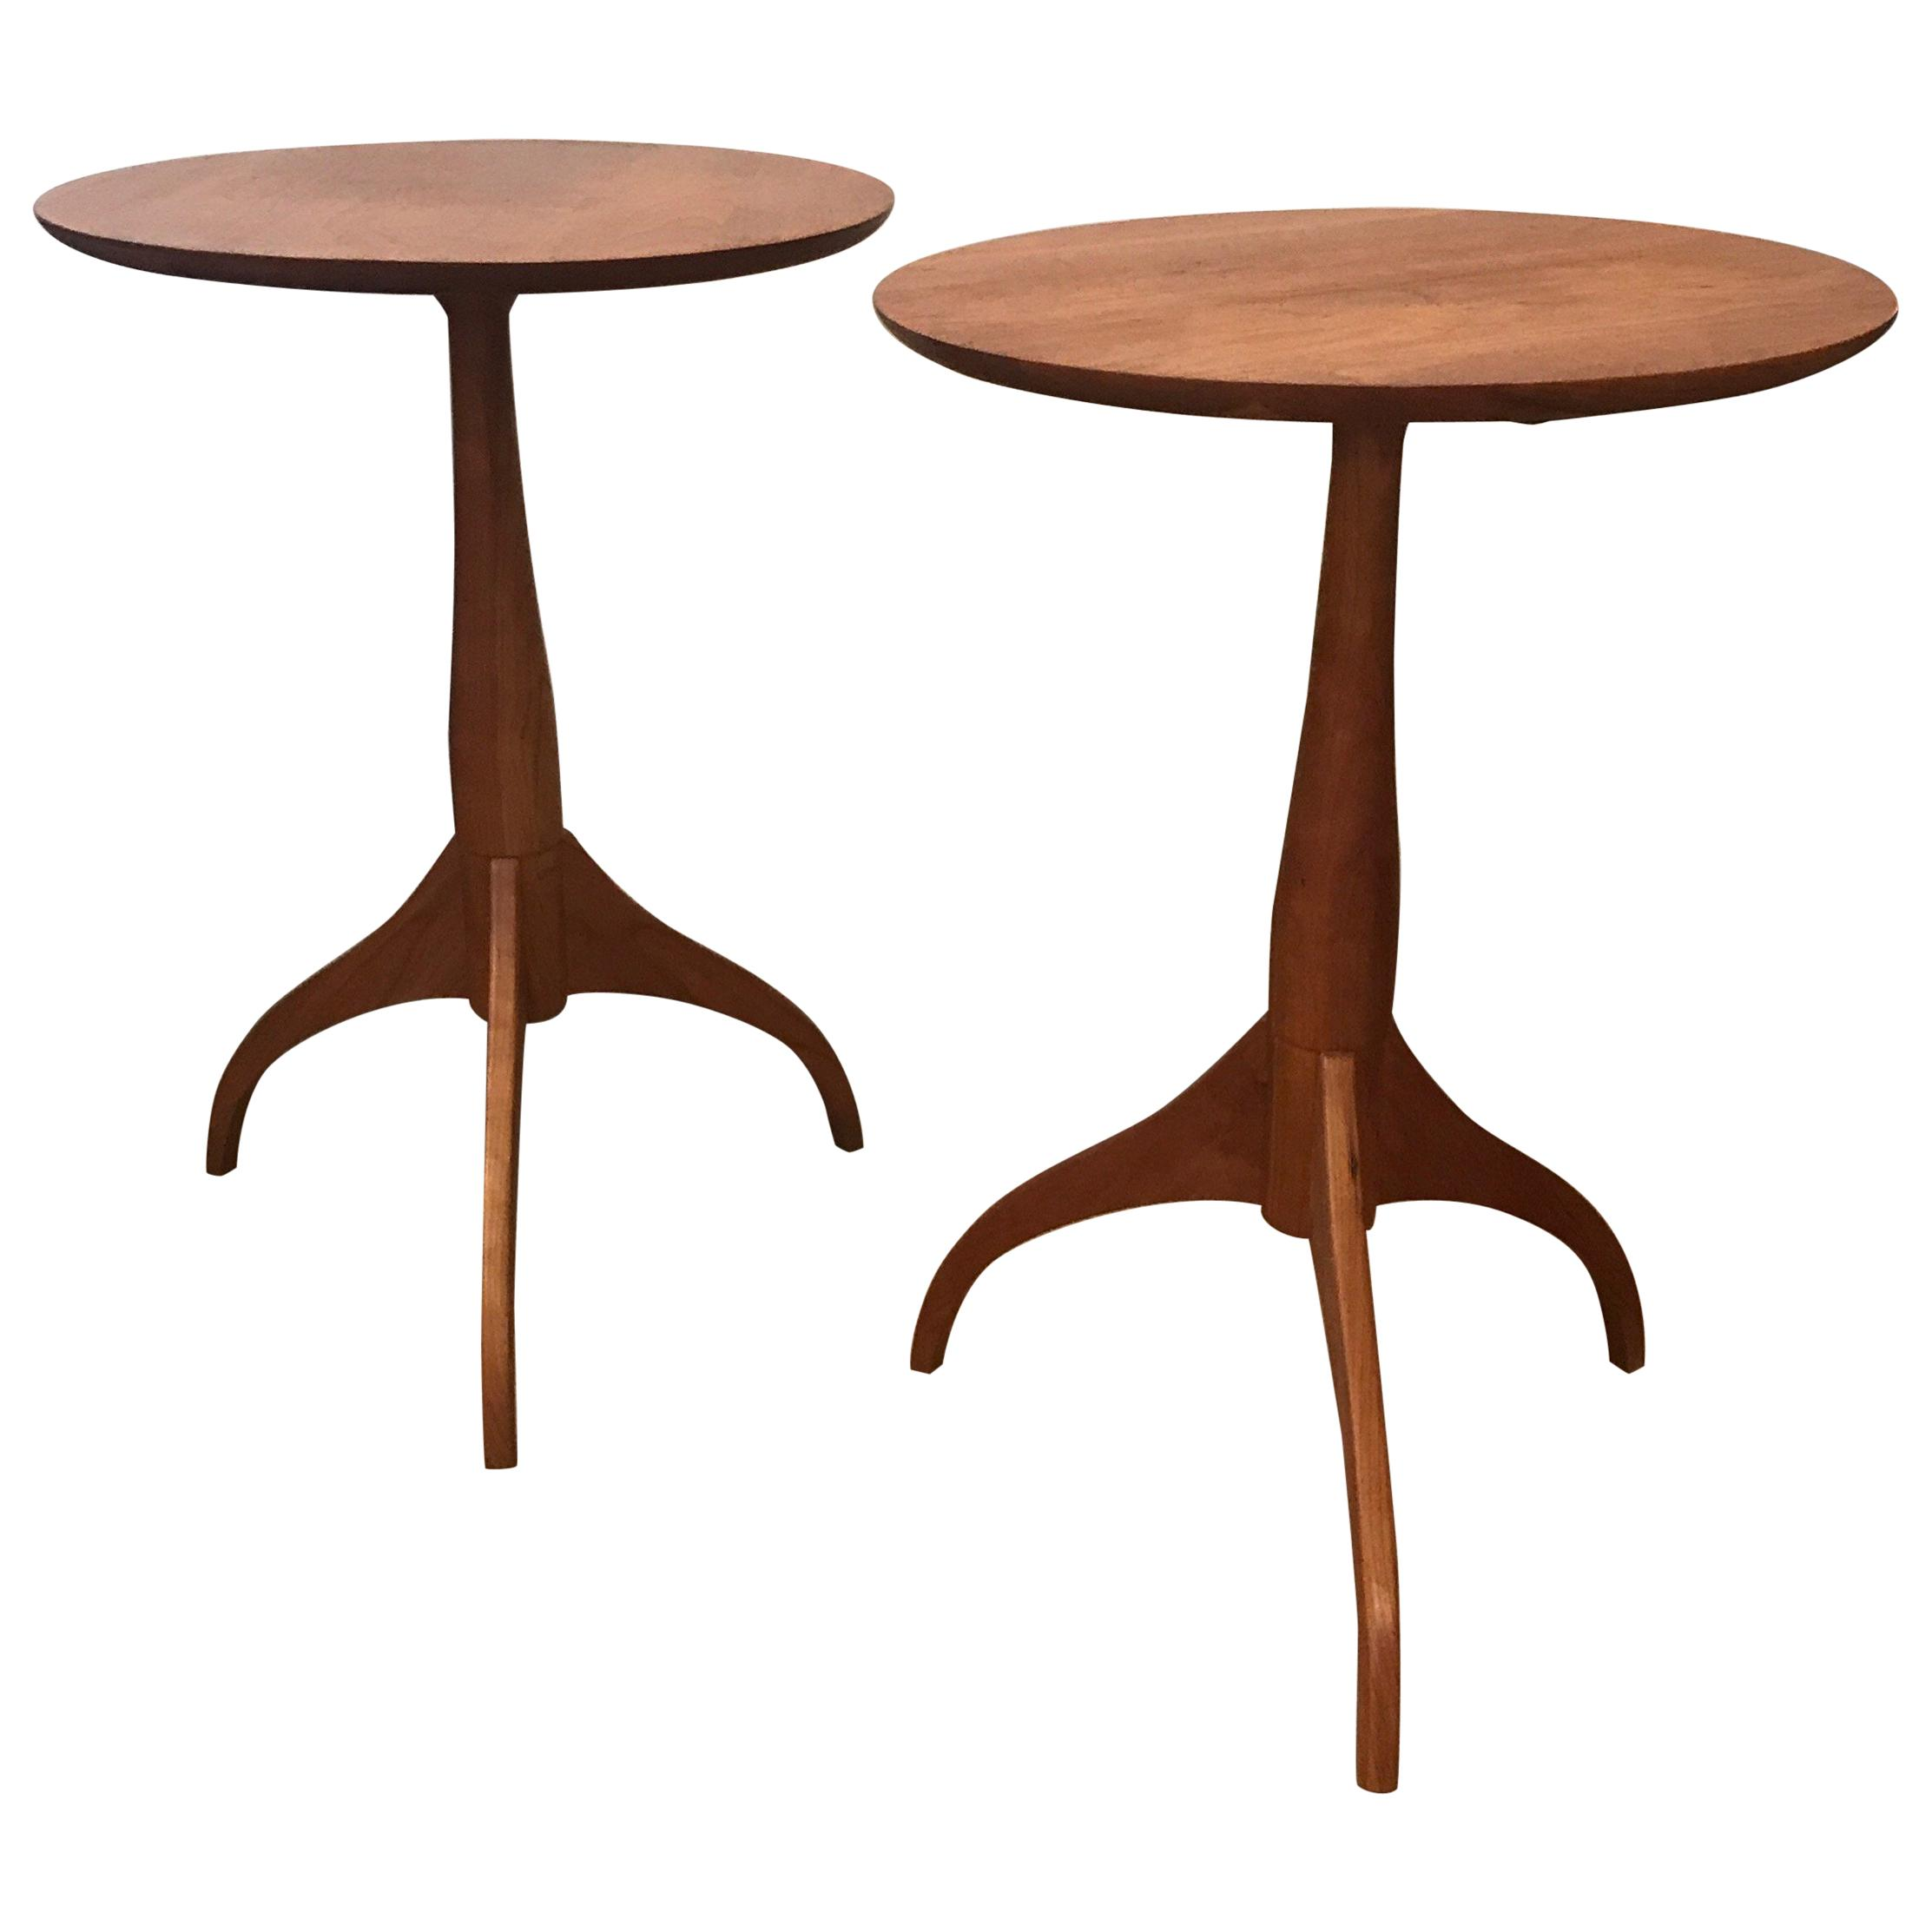 pair classic natural cherry shaker tables for master end table distressing black furniture with white high gloss side large coffee unusual garden dimensions closeout thomasville